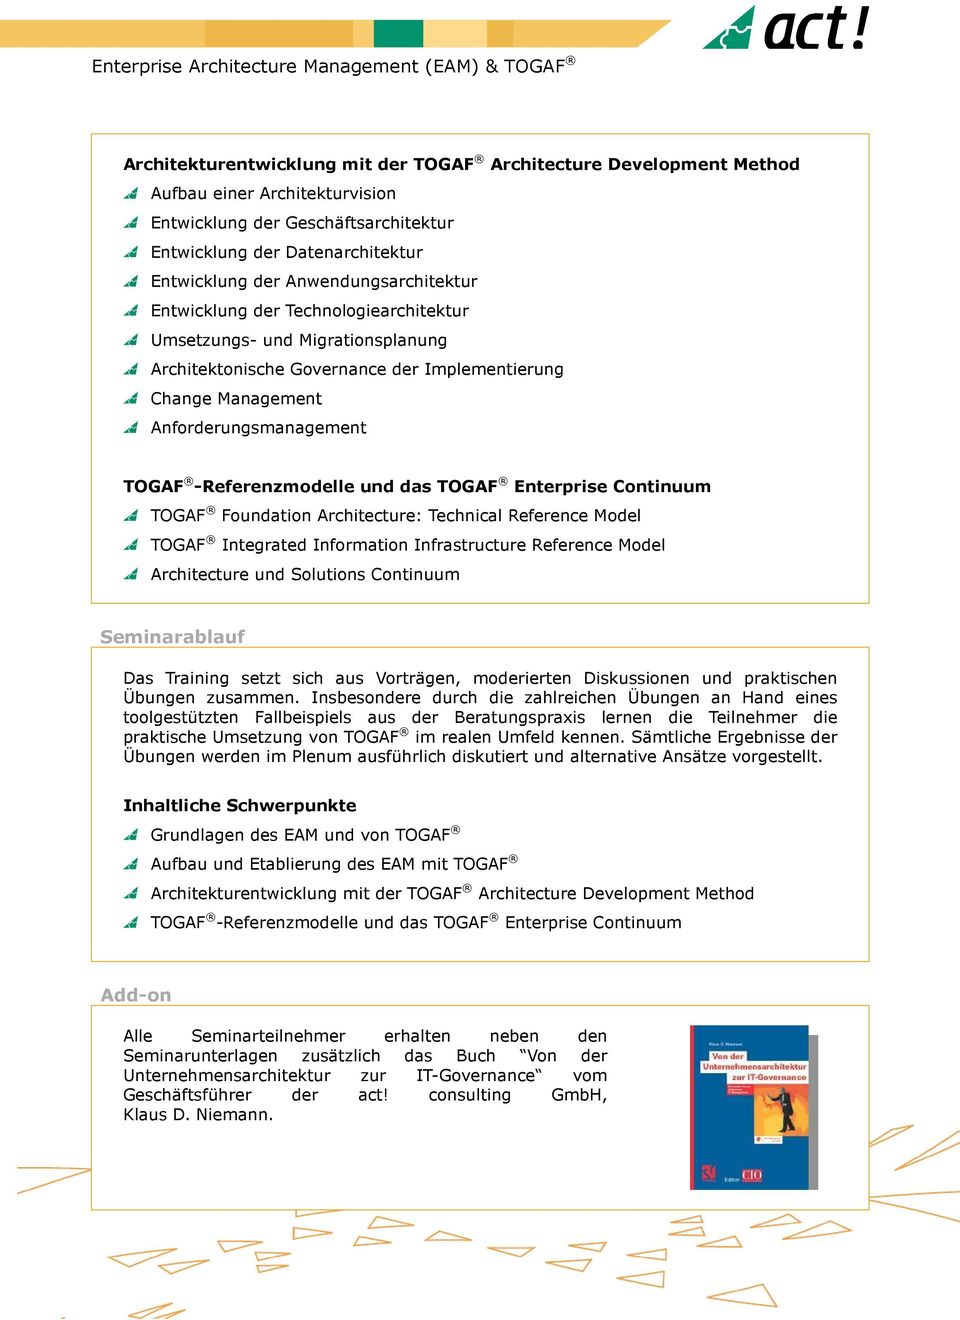 -Referenzmodelle und das TOGAF Enterprise Continuum TOGAF Foundation Architecture: Technical Reference Model TOGAF Integrated Information Infrastructure Reference Model Architecture und Solutions